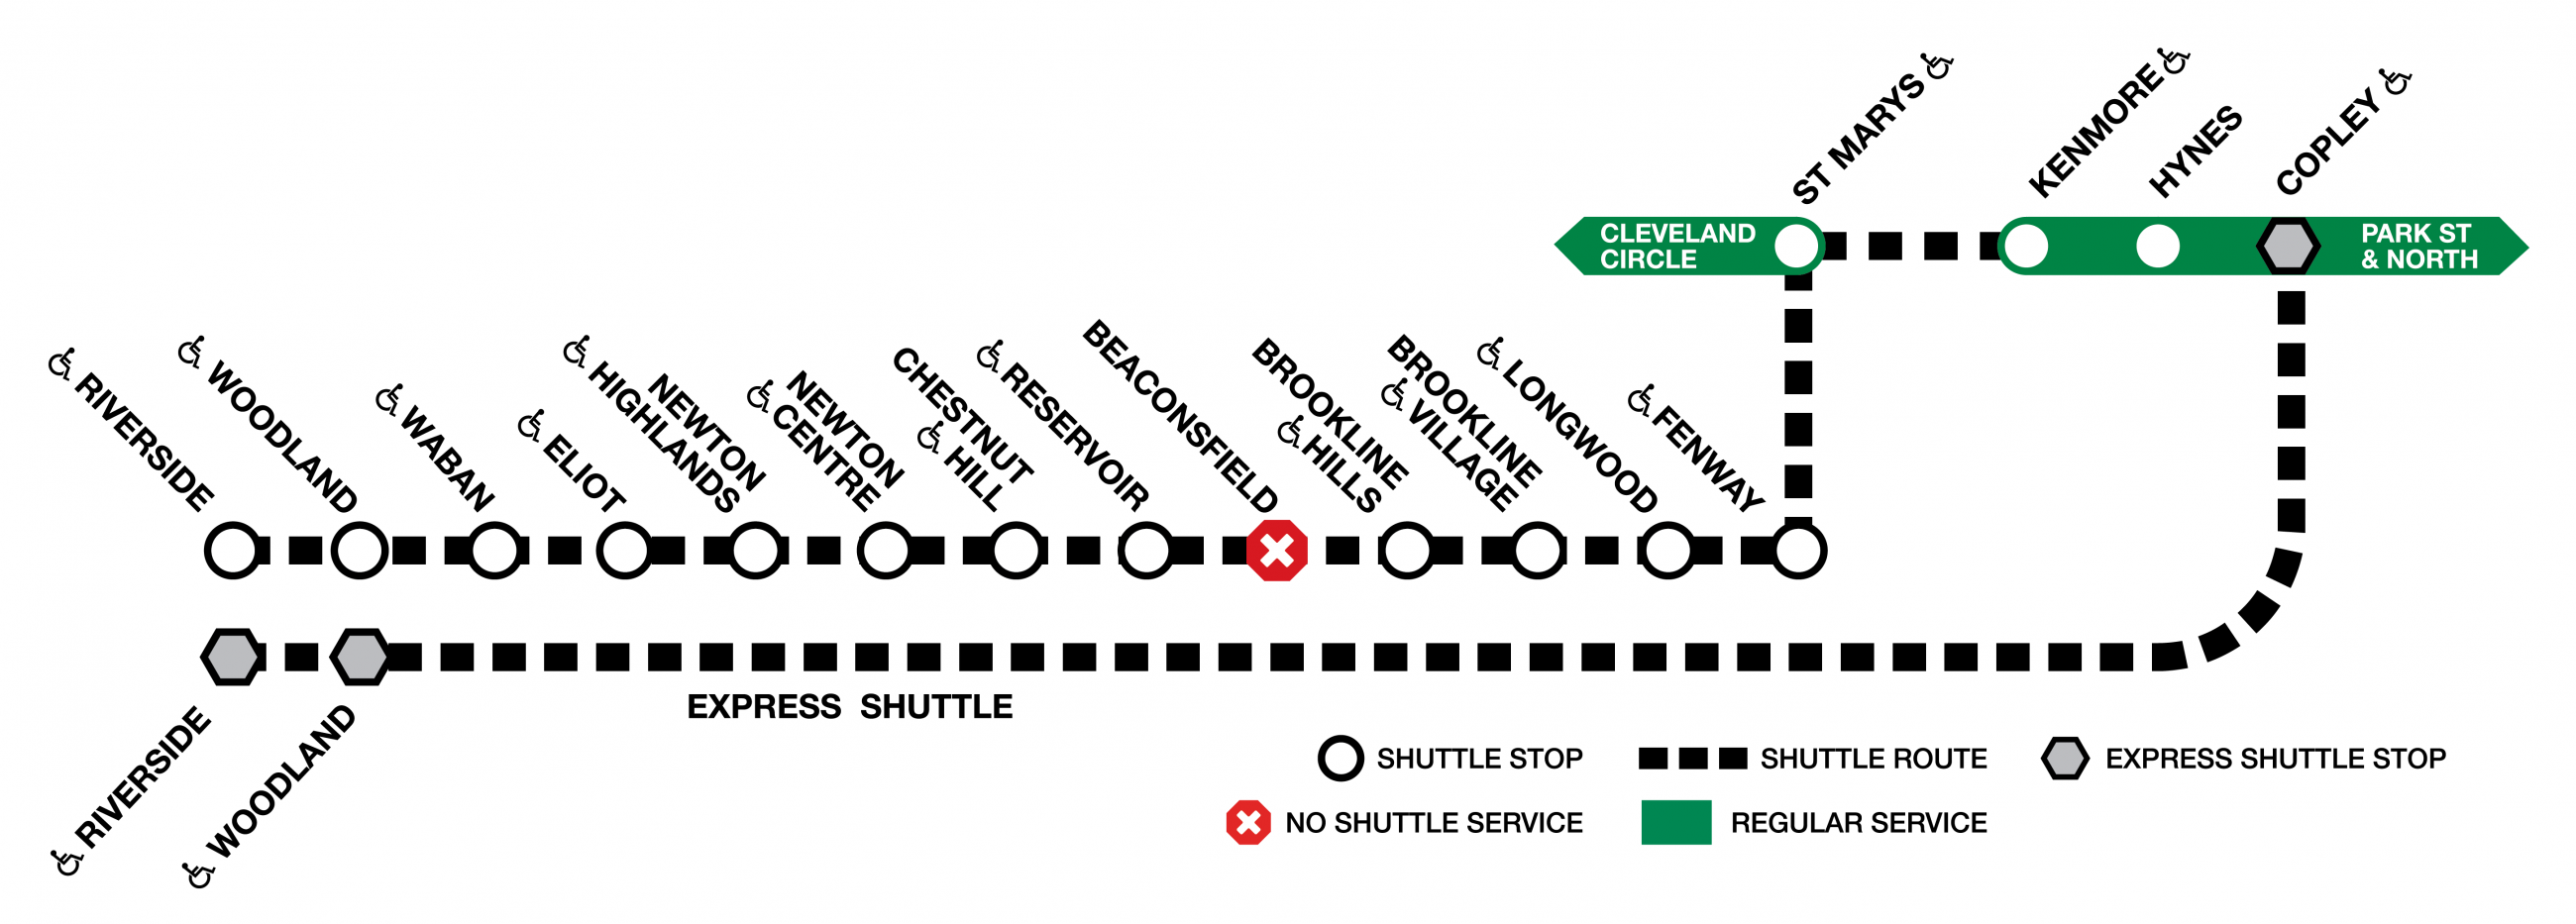 Combined graphic of the Green Line D and C branches. Shuttles run between Riverside to Kenmore on the D branch, with an extra stop between Fenway at St. Mary's Street on the C branch. Express shuttles also run between Riverside/Woodland and Copley on the D branch.